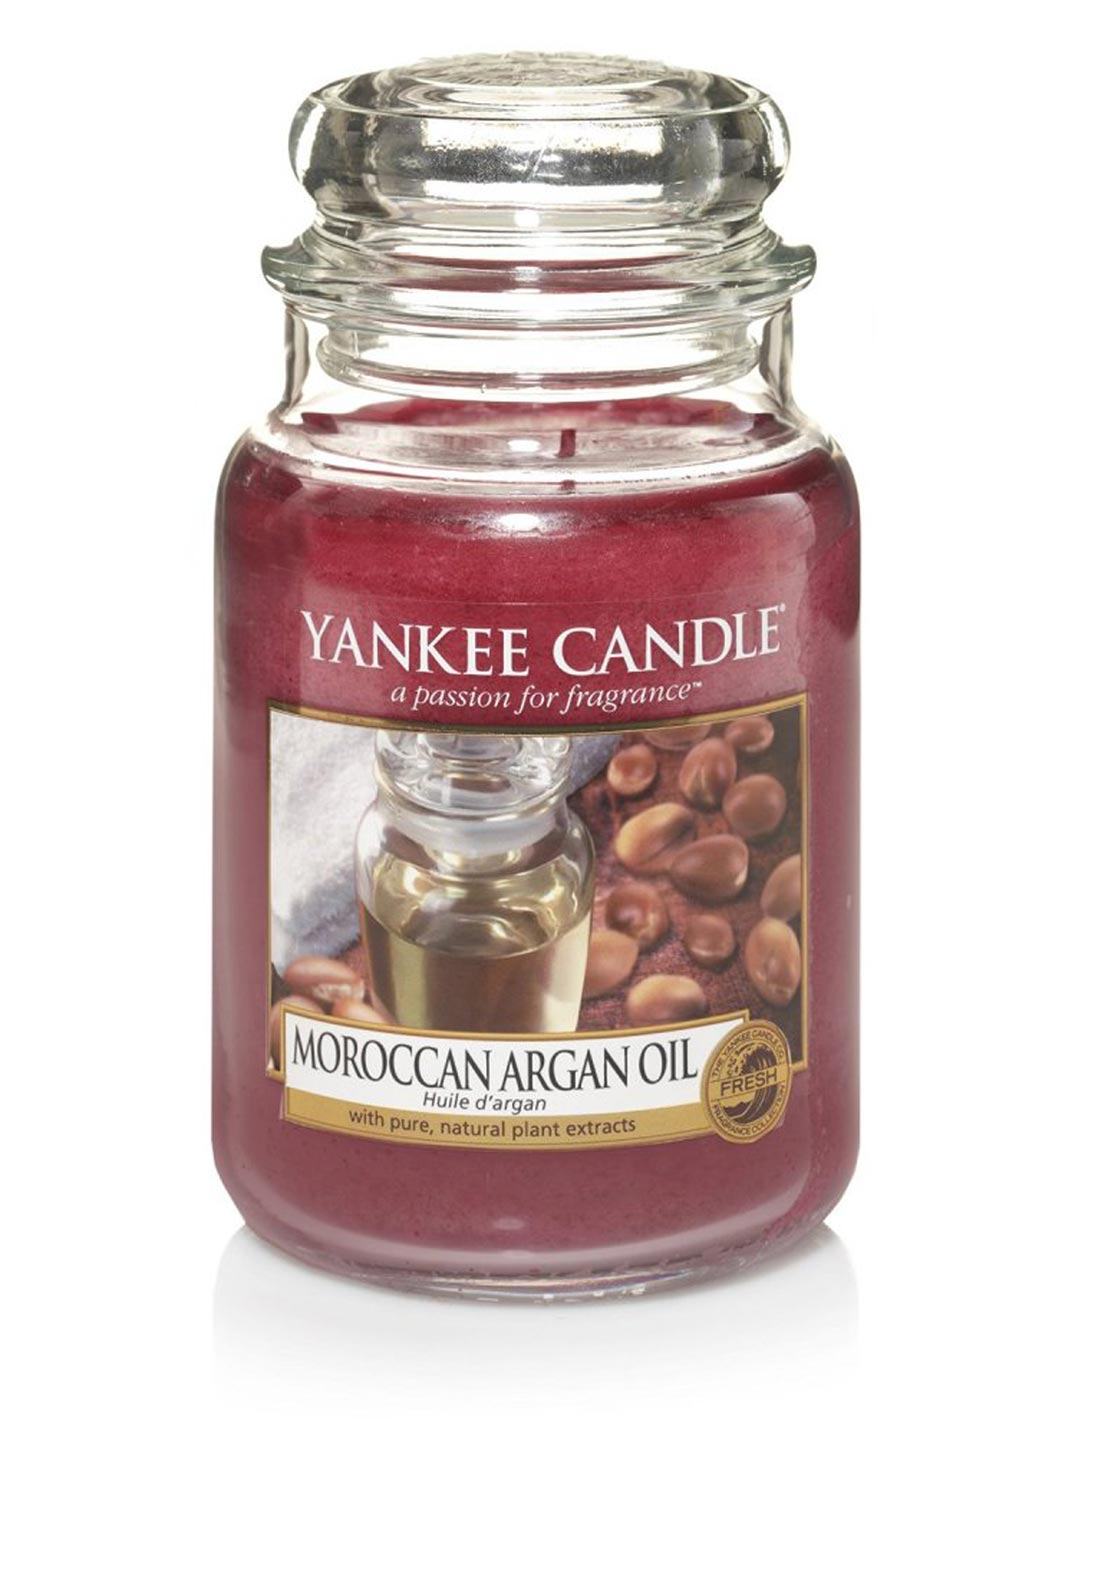 Yankee Candle Large Classic Jar, Moroccan Argan Oil